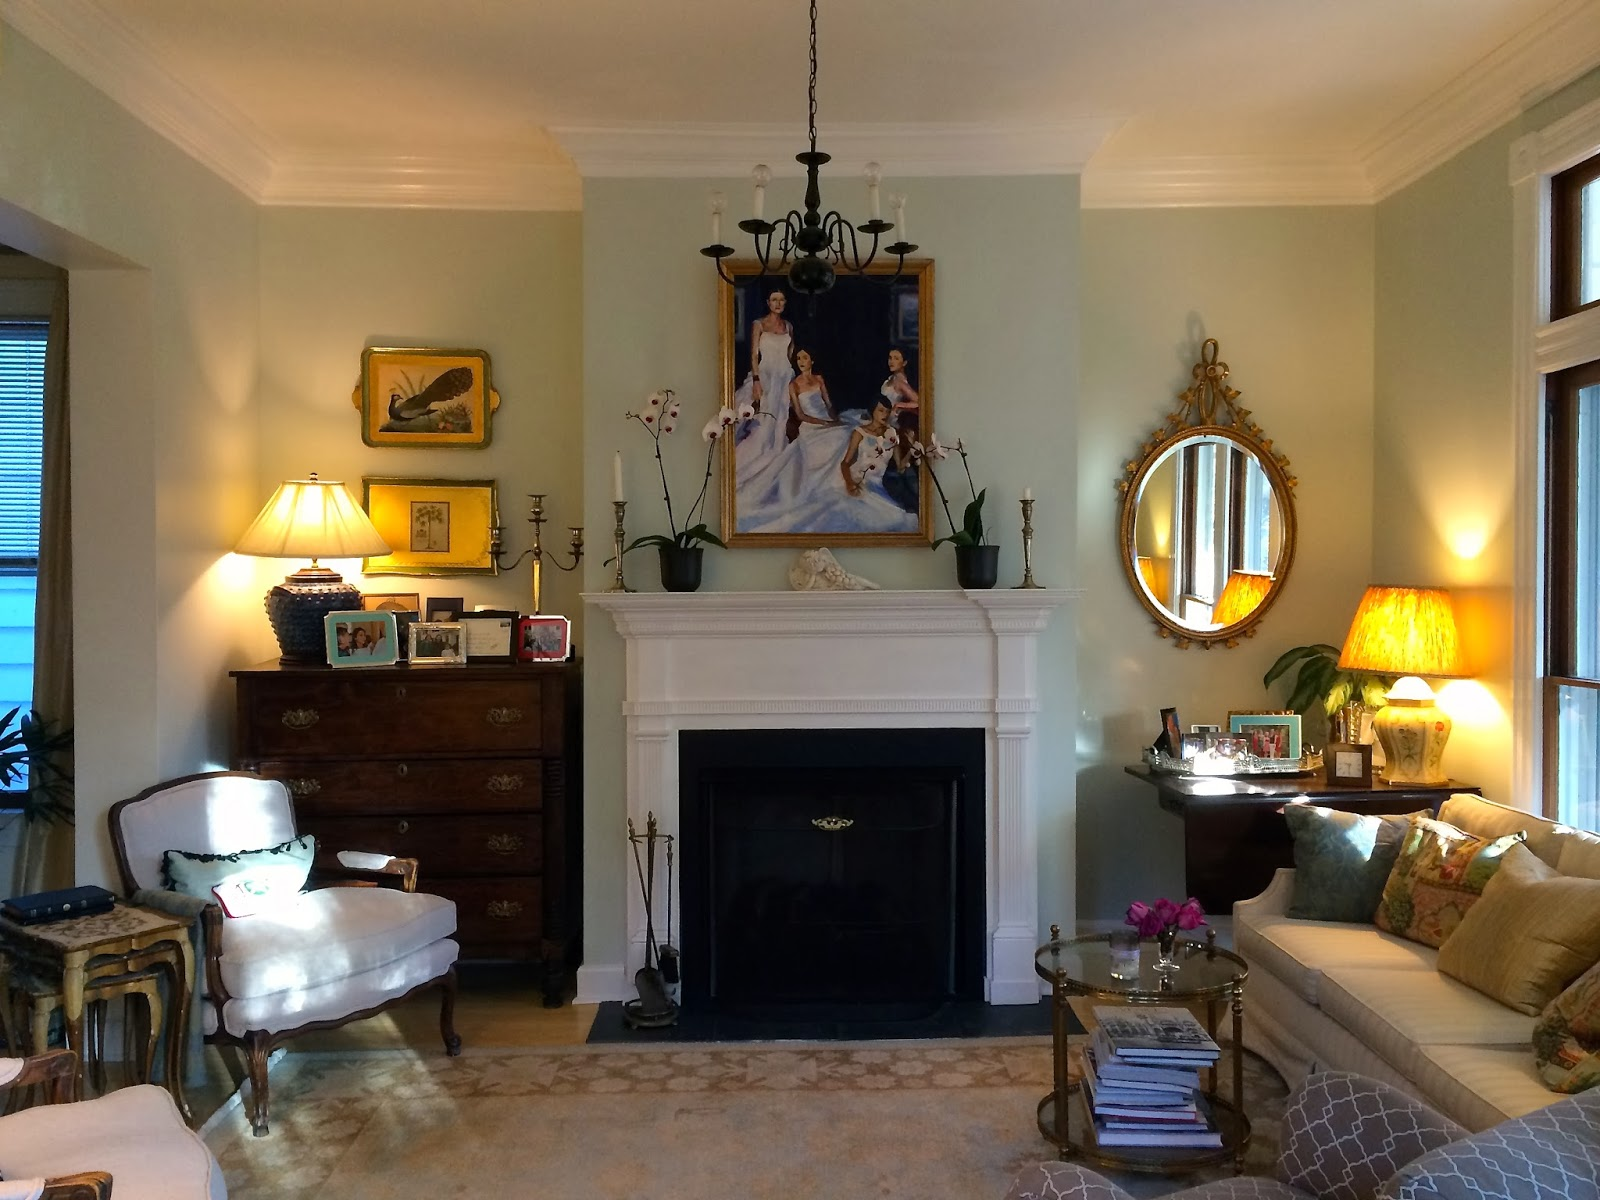 Mel & Liza: Living Room: DIY Crown Molding Before & After